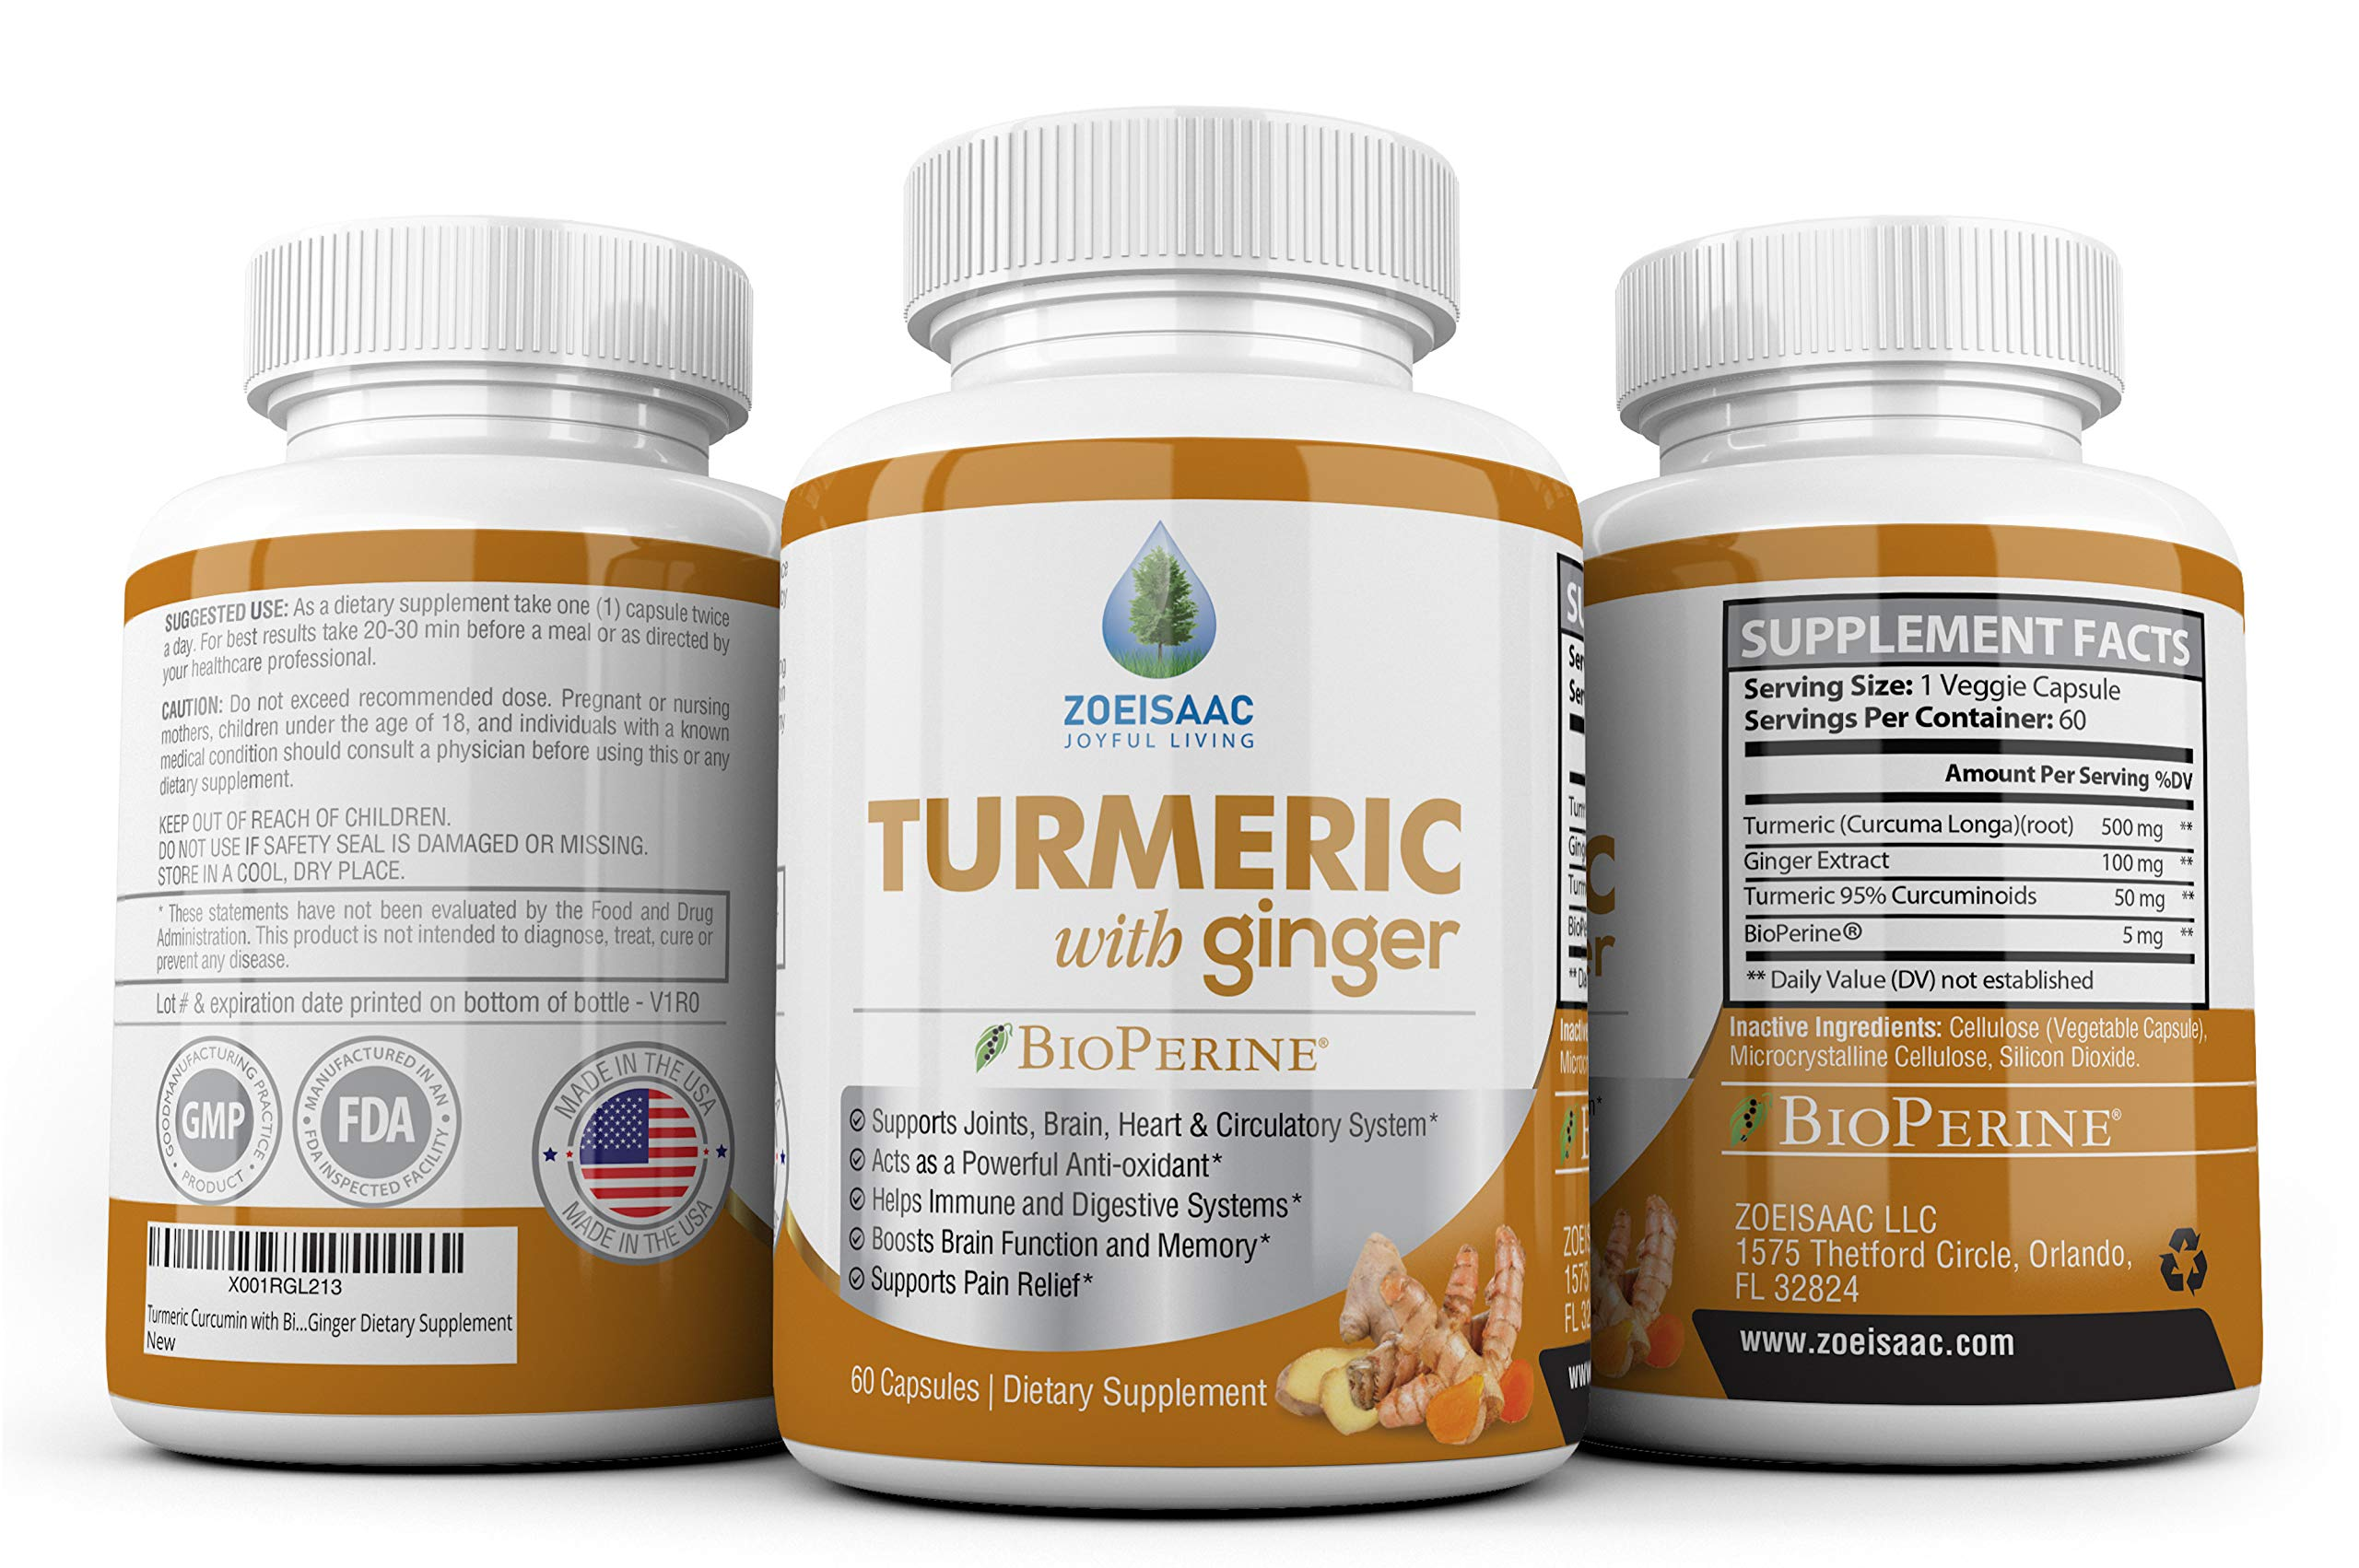 Turmeric Curcumin with Bioperine Black Pepper and Ginger 650mg Anti-oxidant, Reduces Stress, Heart, Joint & Digestive Support. All Natural, Safe & Effective Dietary Supplement.